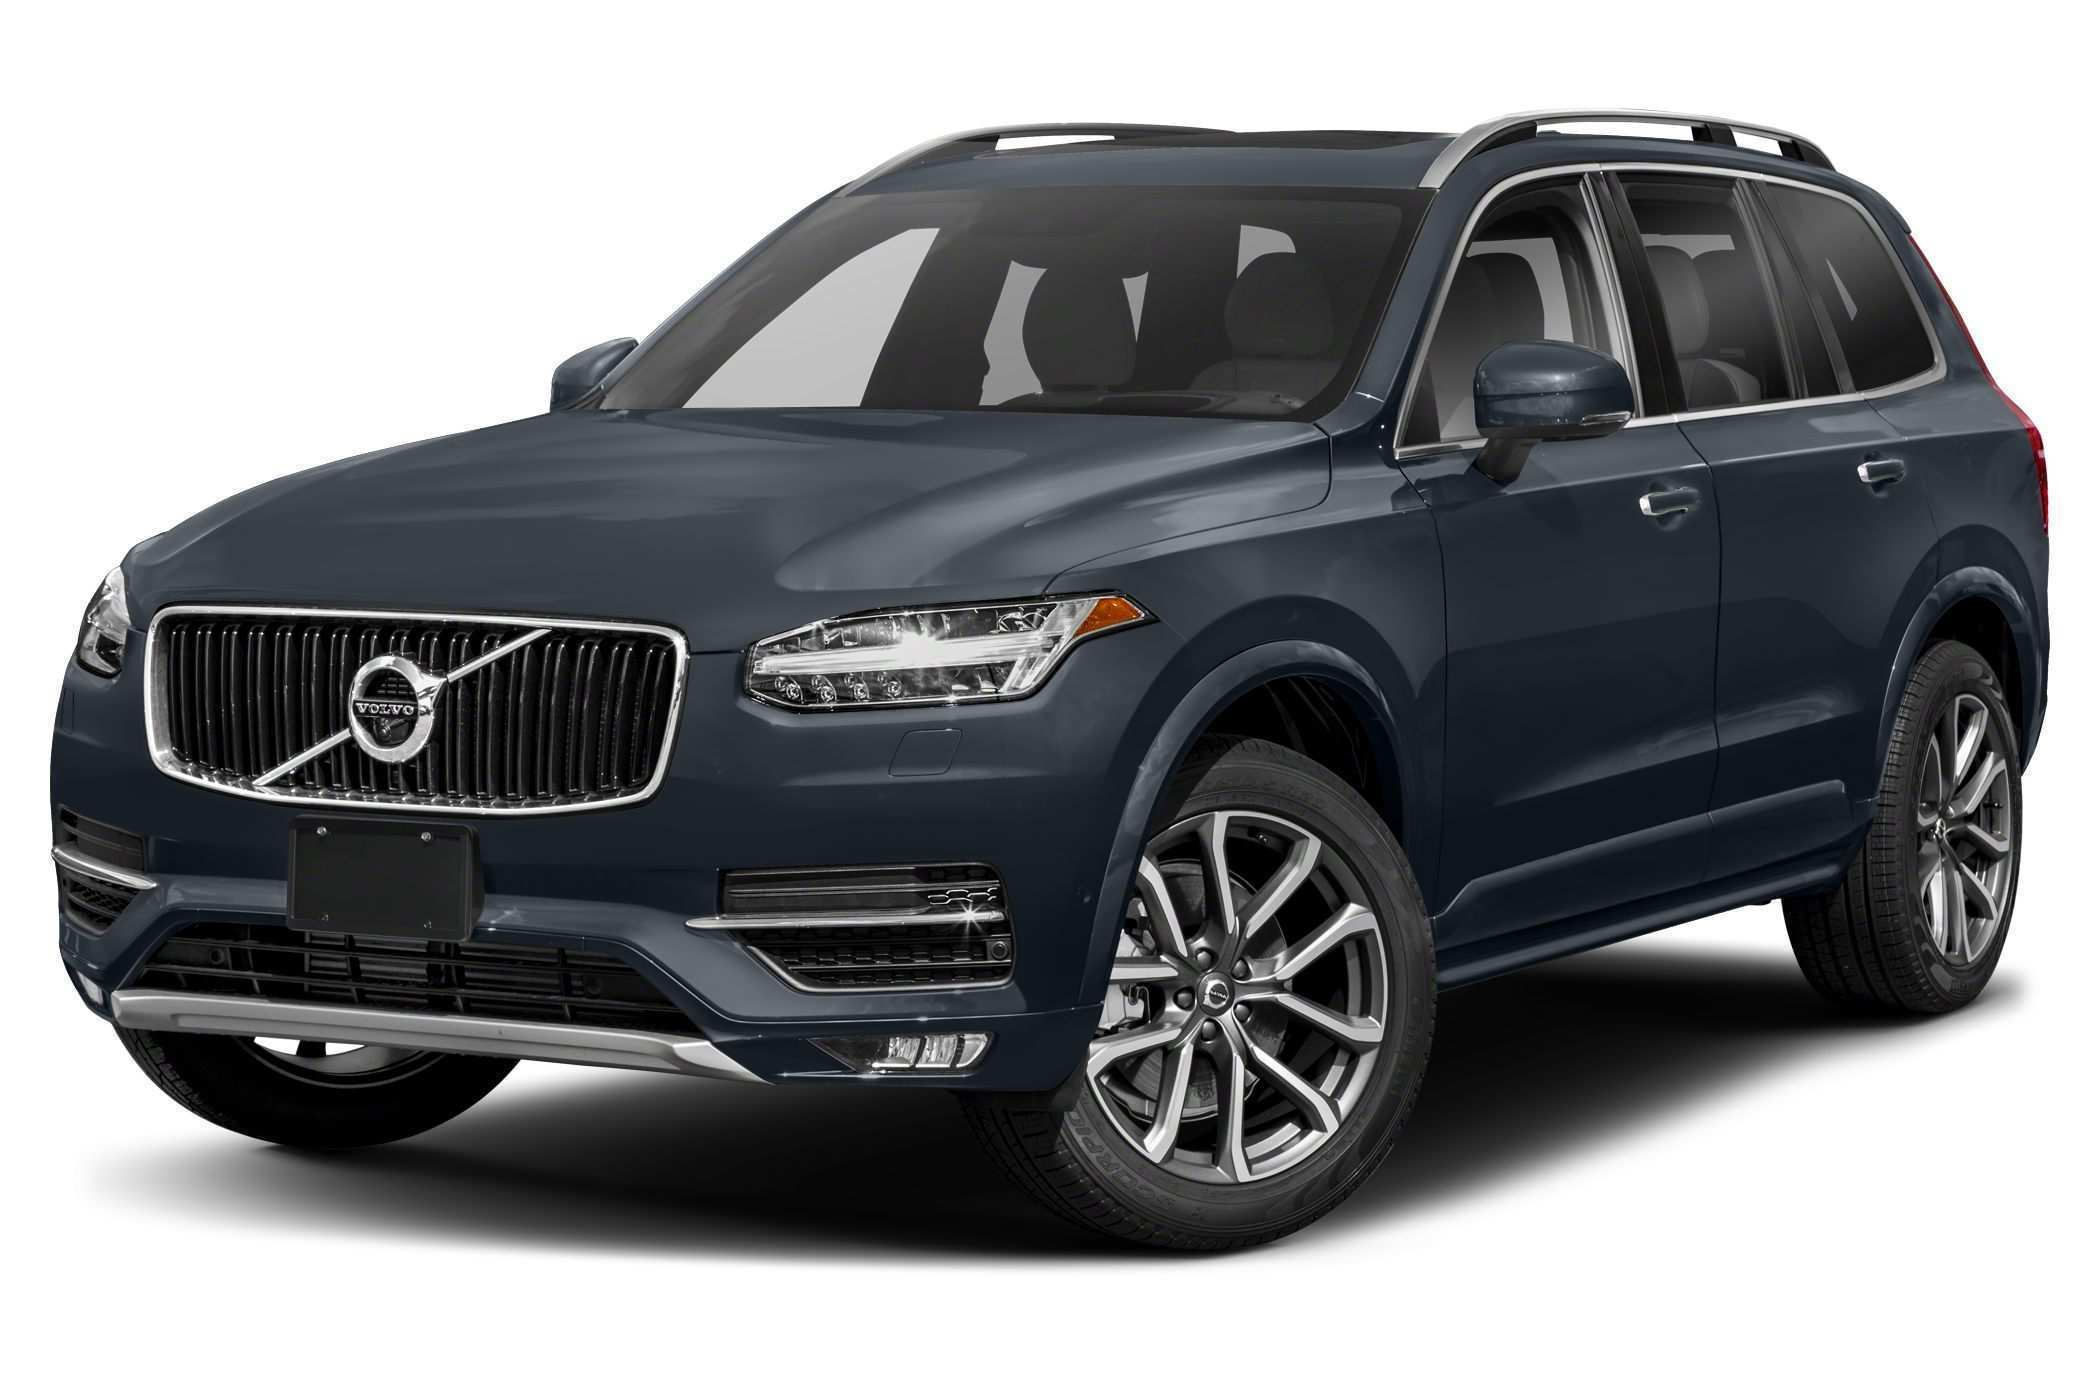 94 Great The Volvo Xc90 2019 New Features Release Research New for The Volvo Xc90 2019 New Features Release